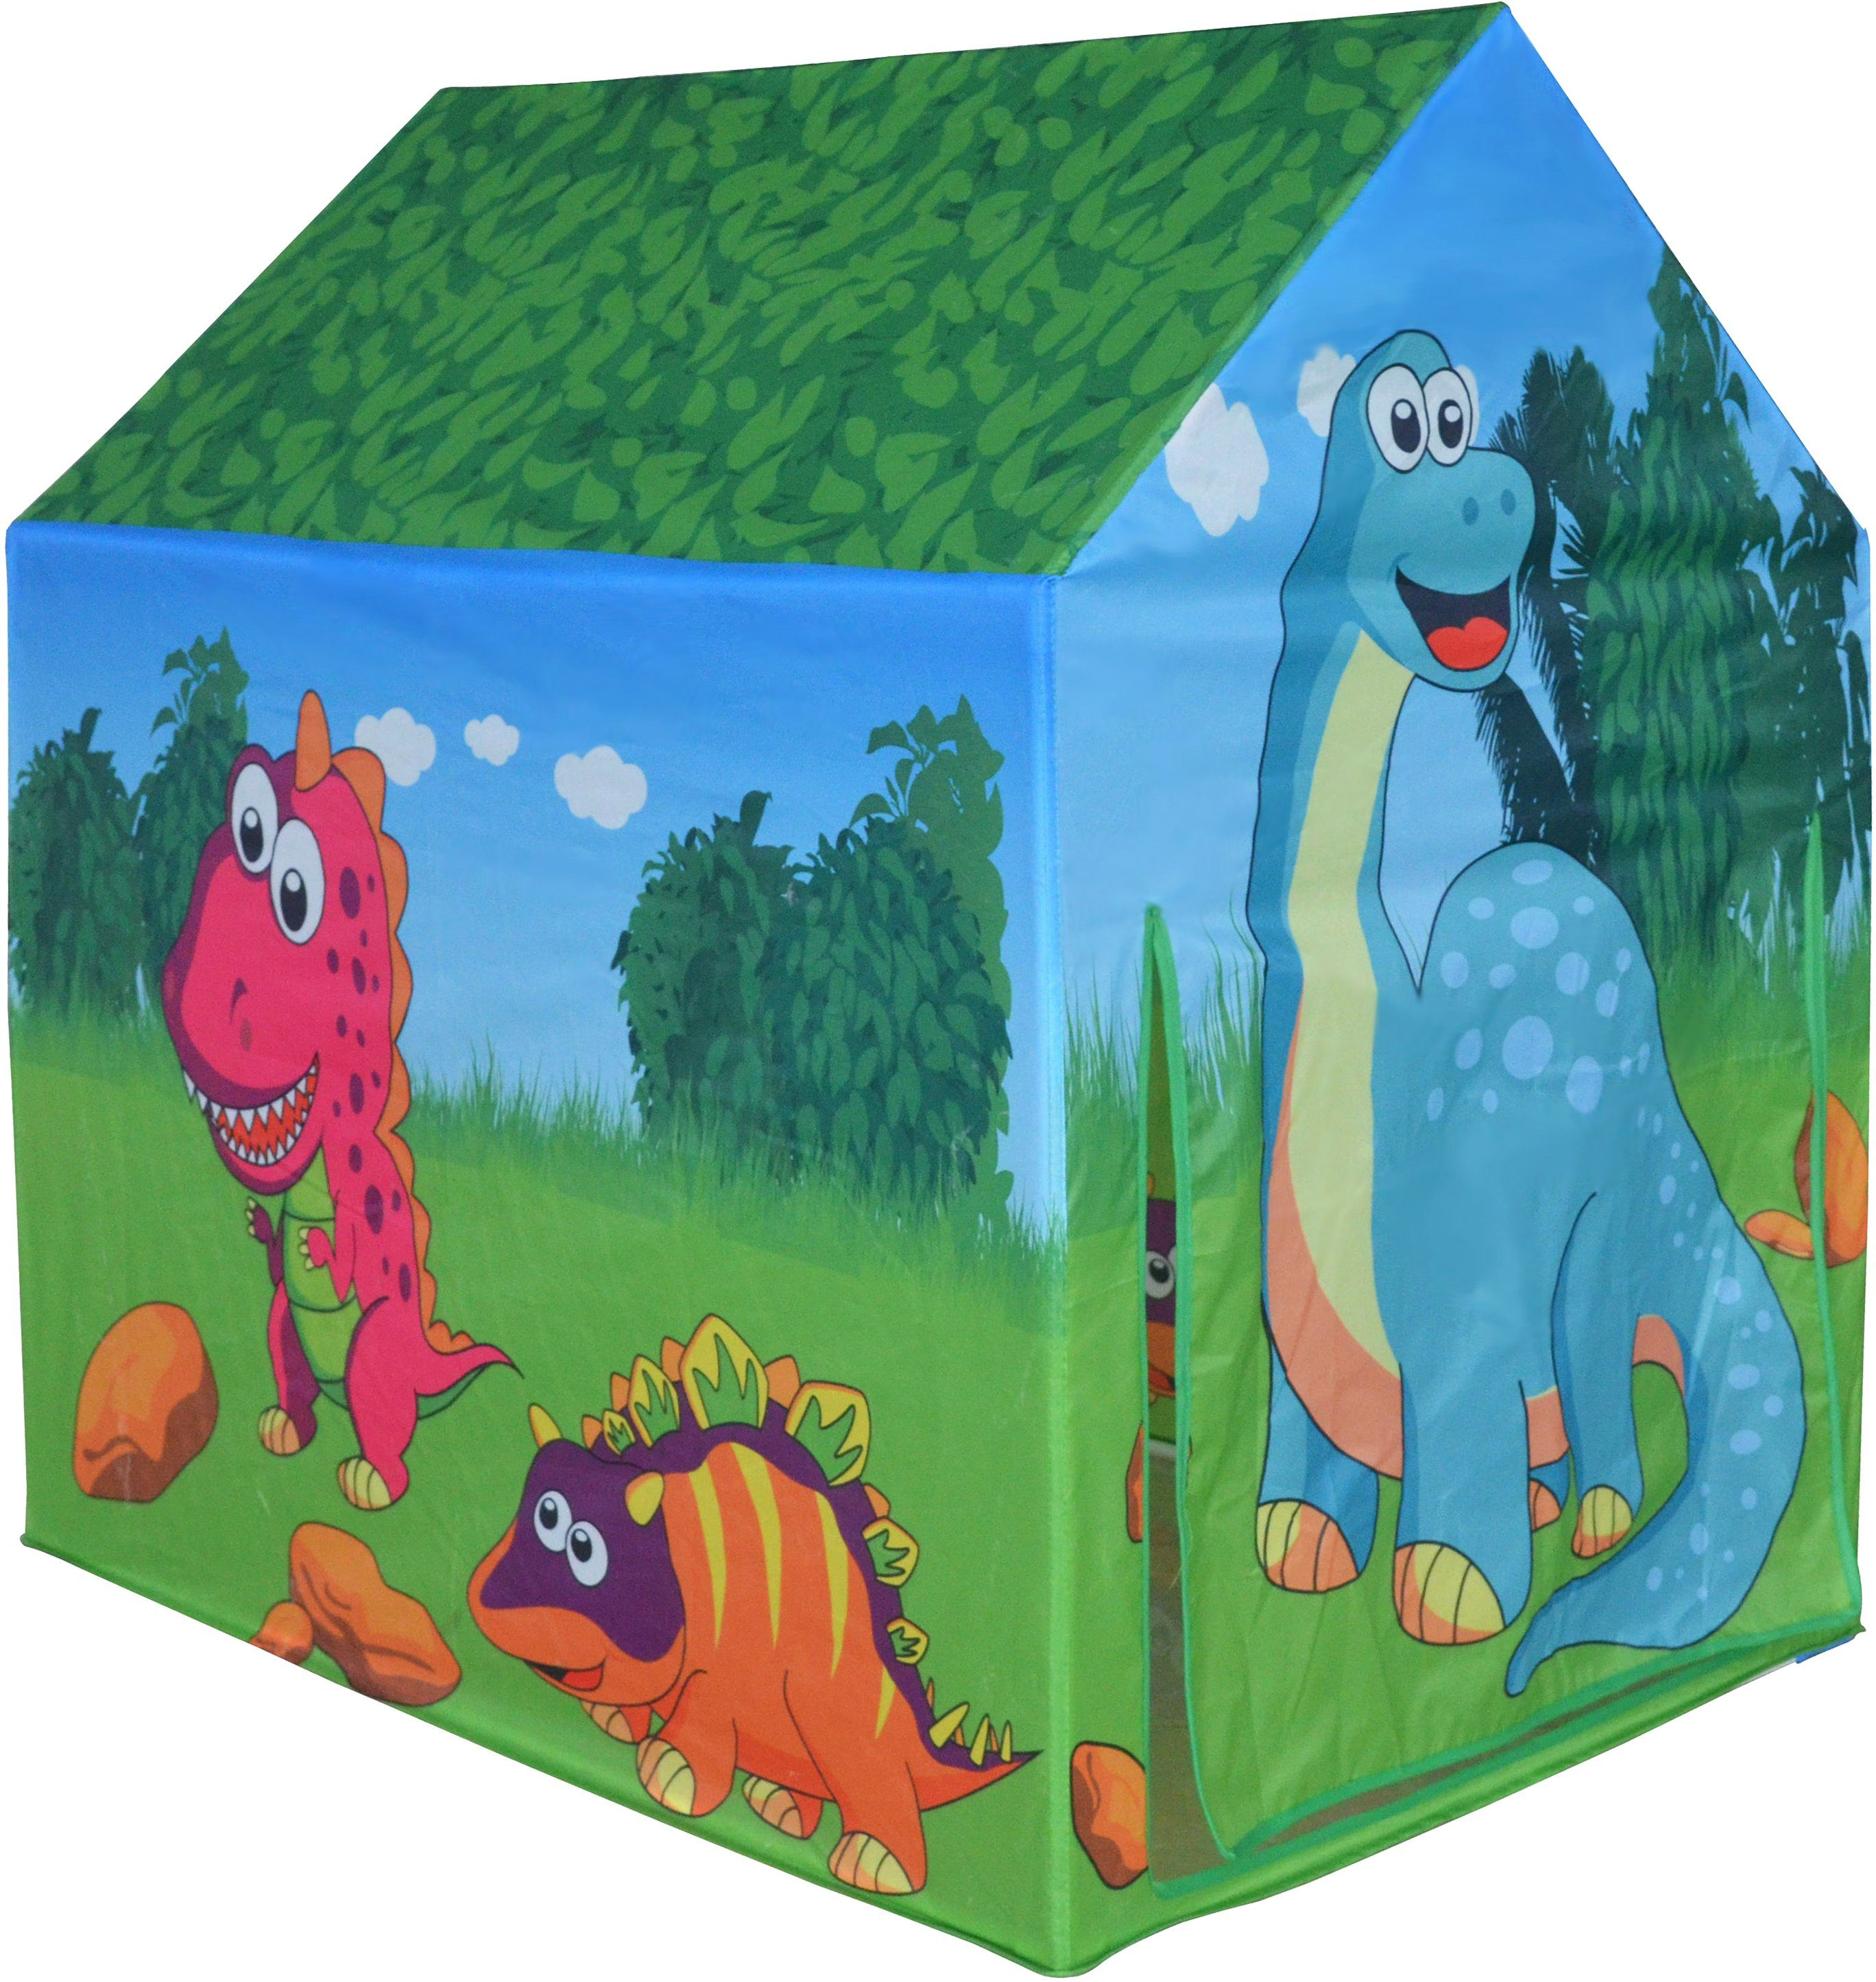 knorr toys Spielzelt, »Dinohaus«